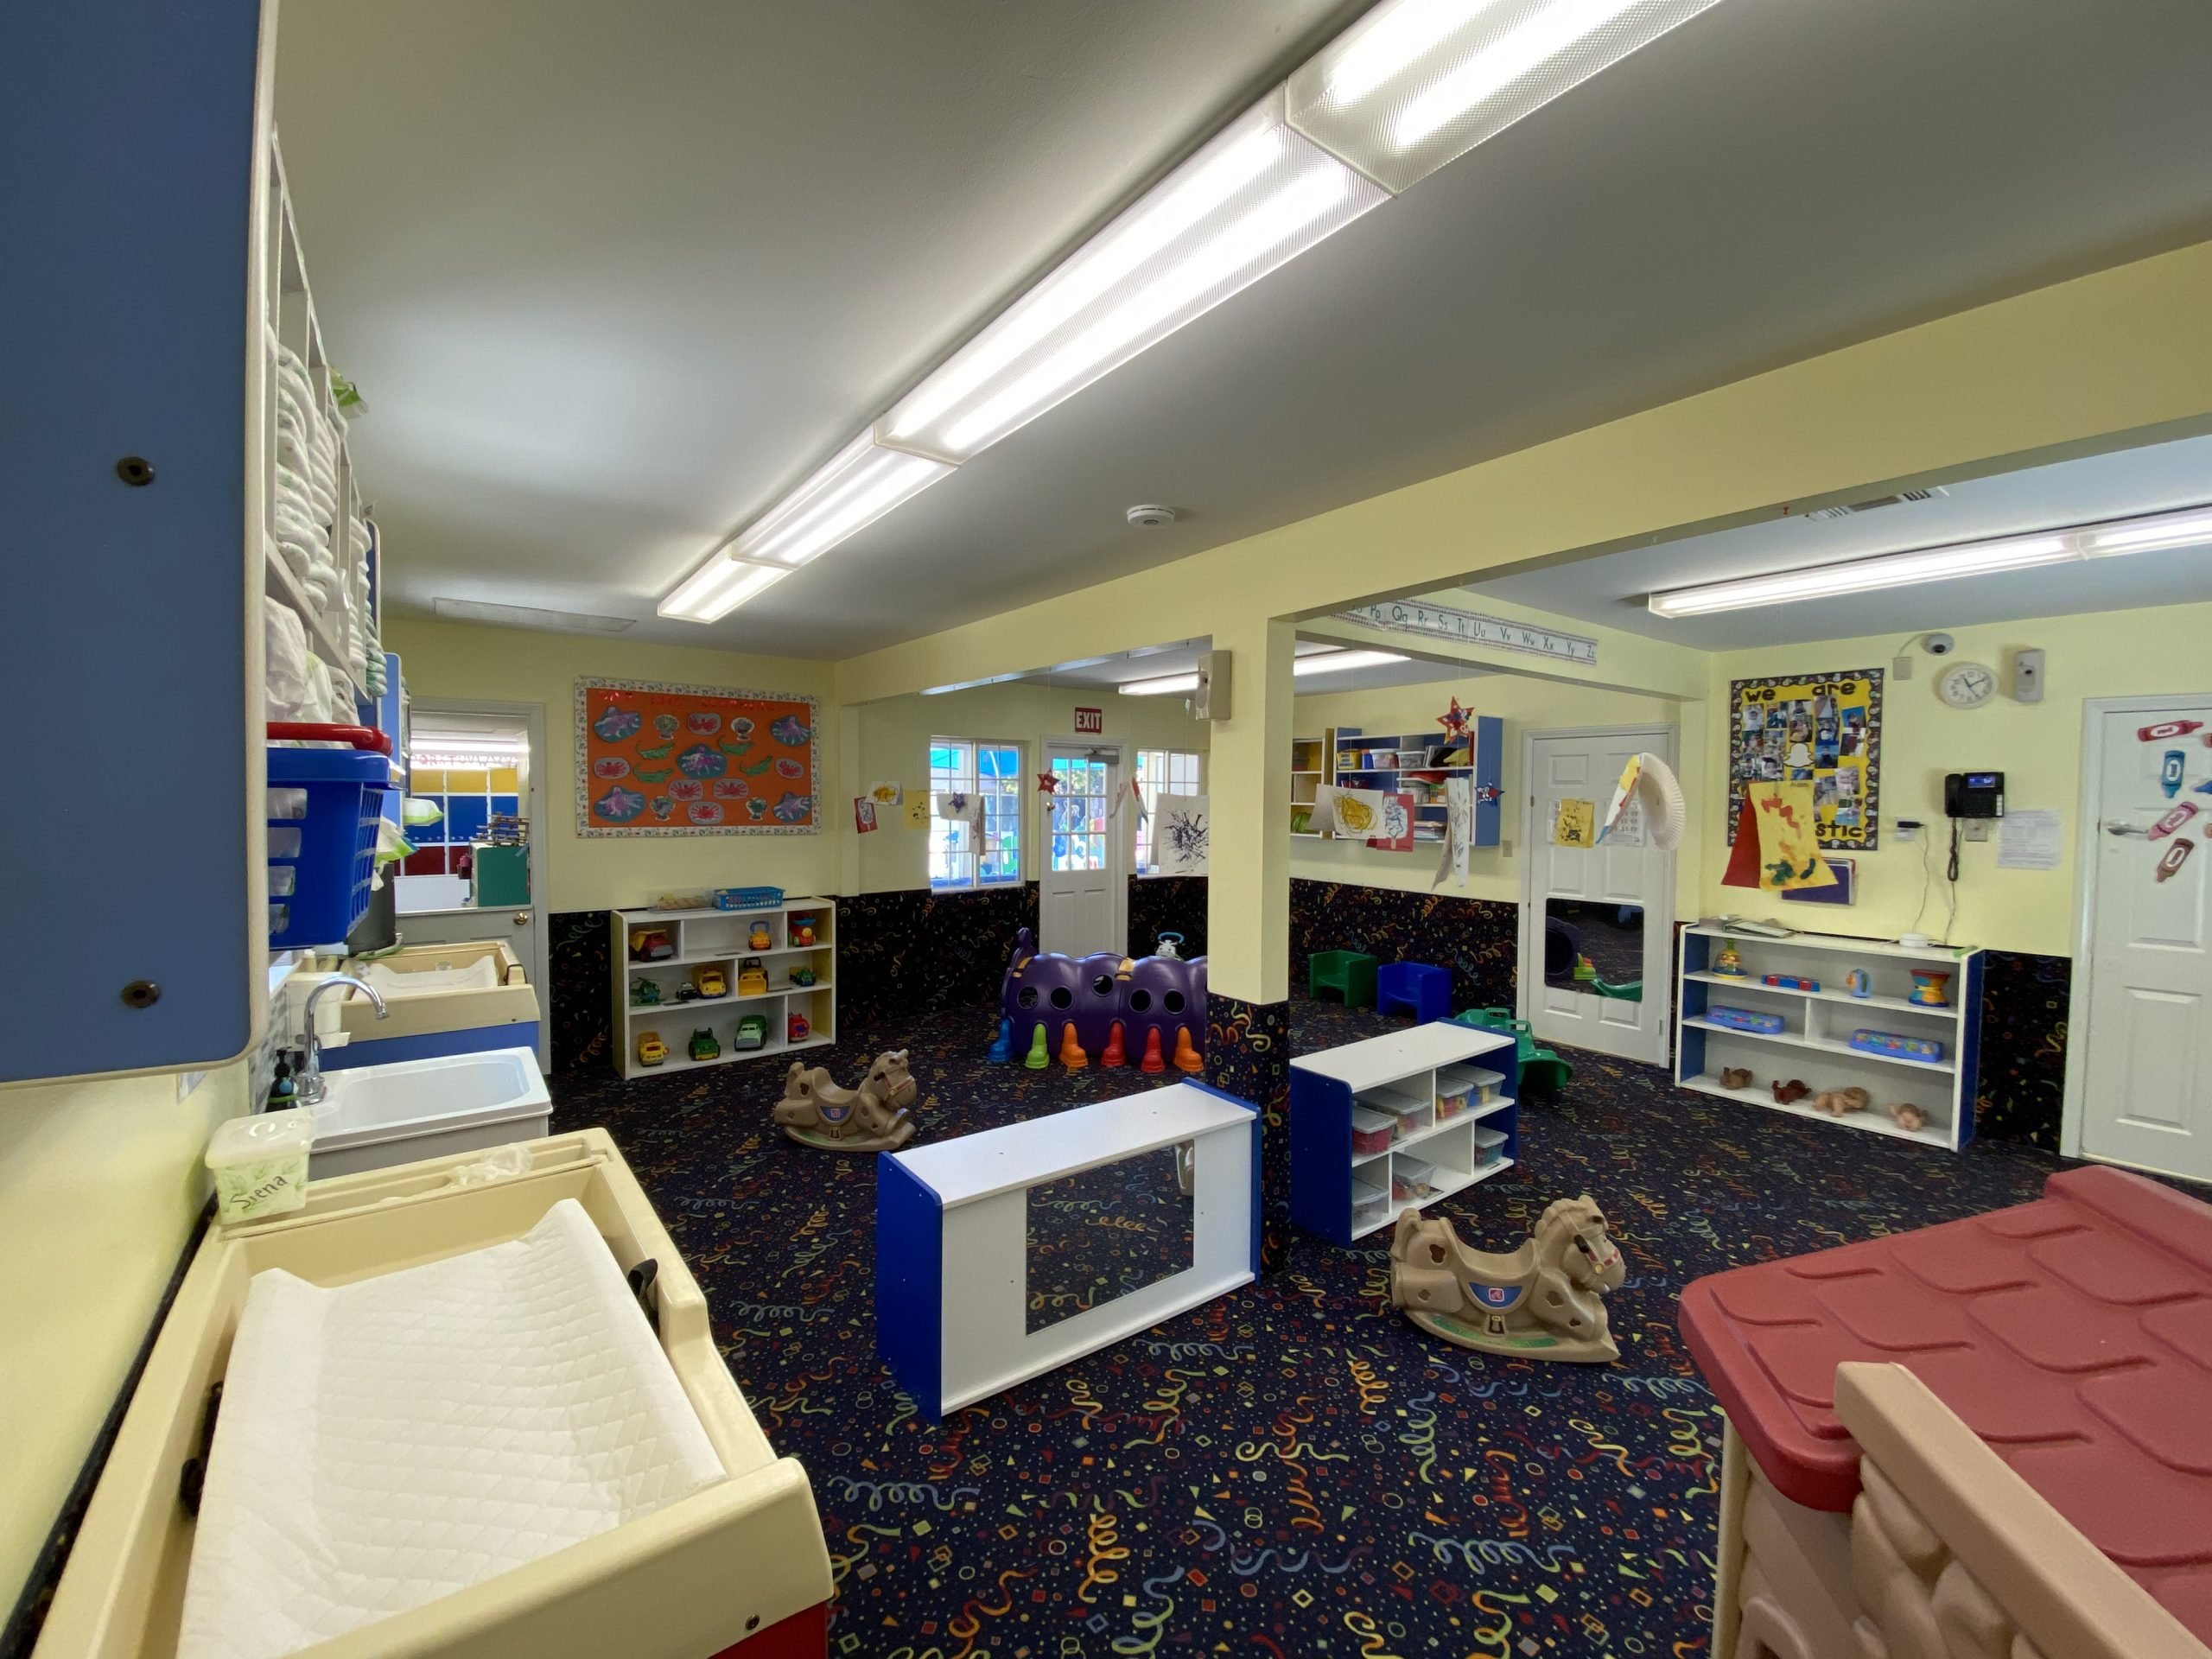 Toddler Classroom in daycare center